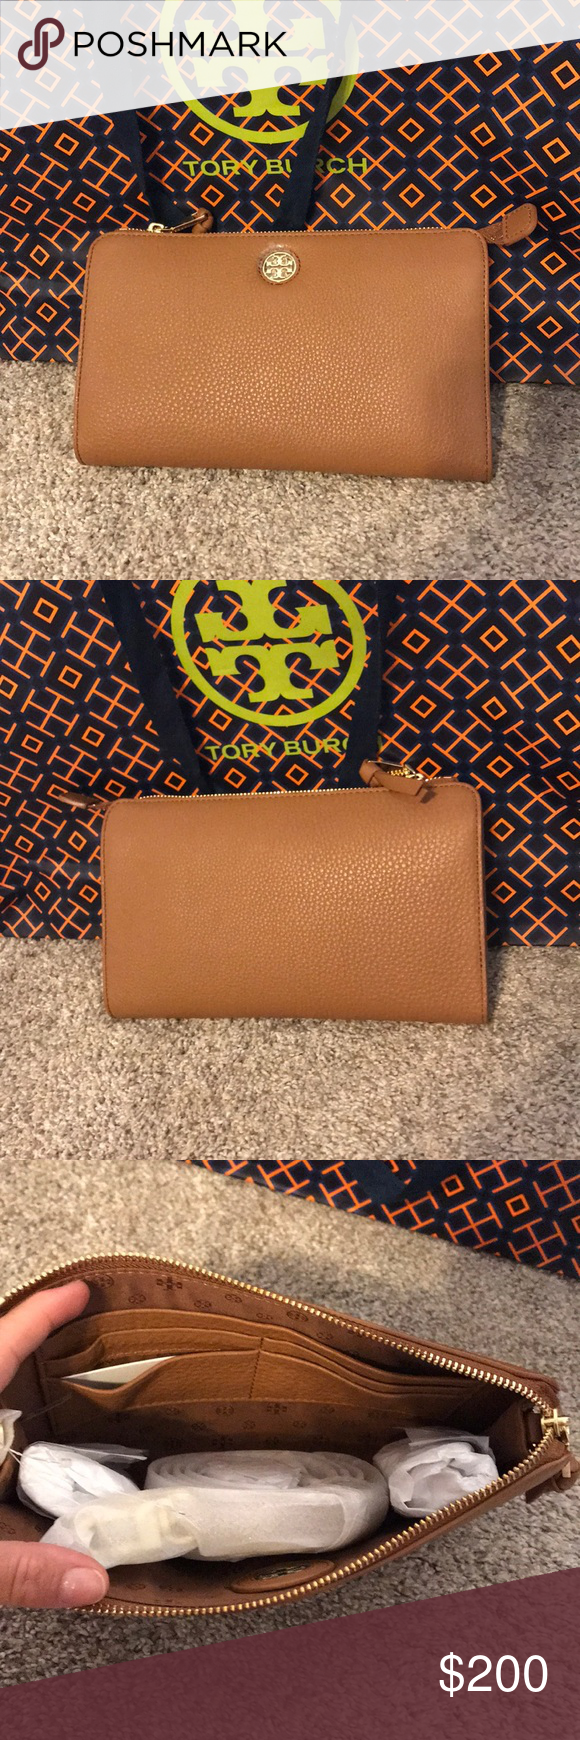 9a8748320b4f Tory Burch Brody Pebbled Wallet Crossbody Bark Brand New Tory Burch Brody  Pebbled Wallet Crossbody Bark